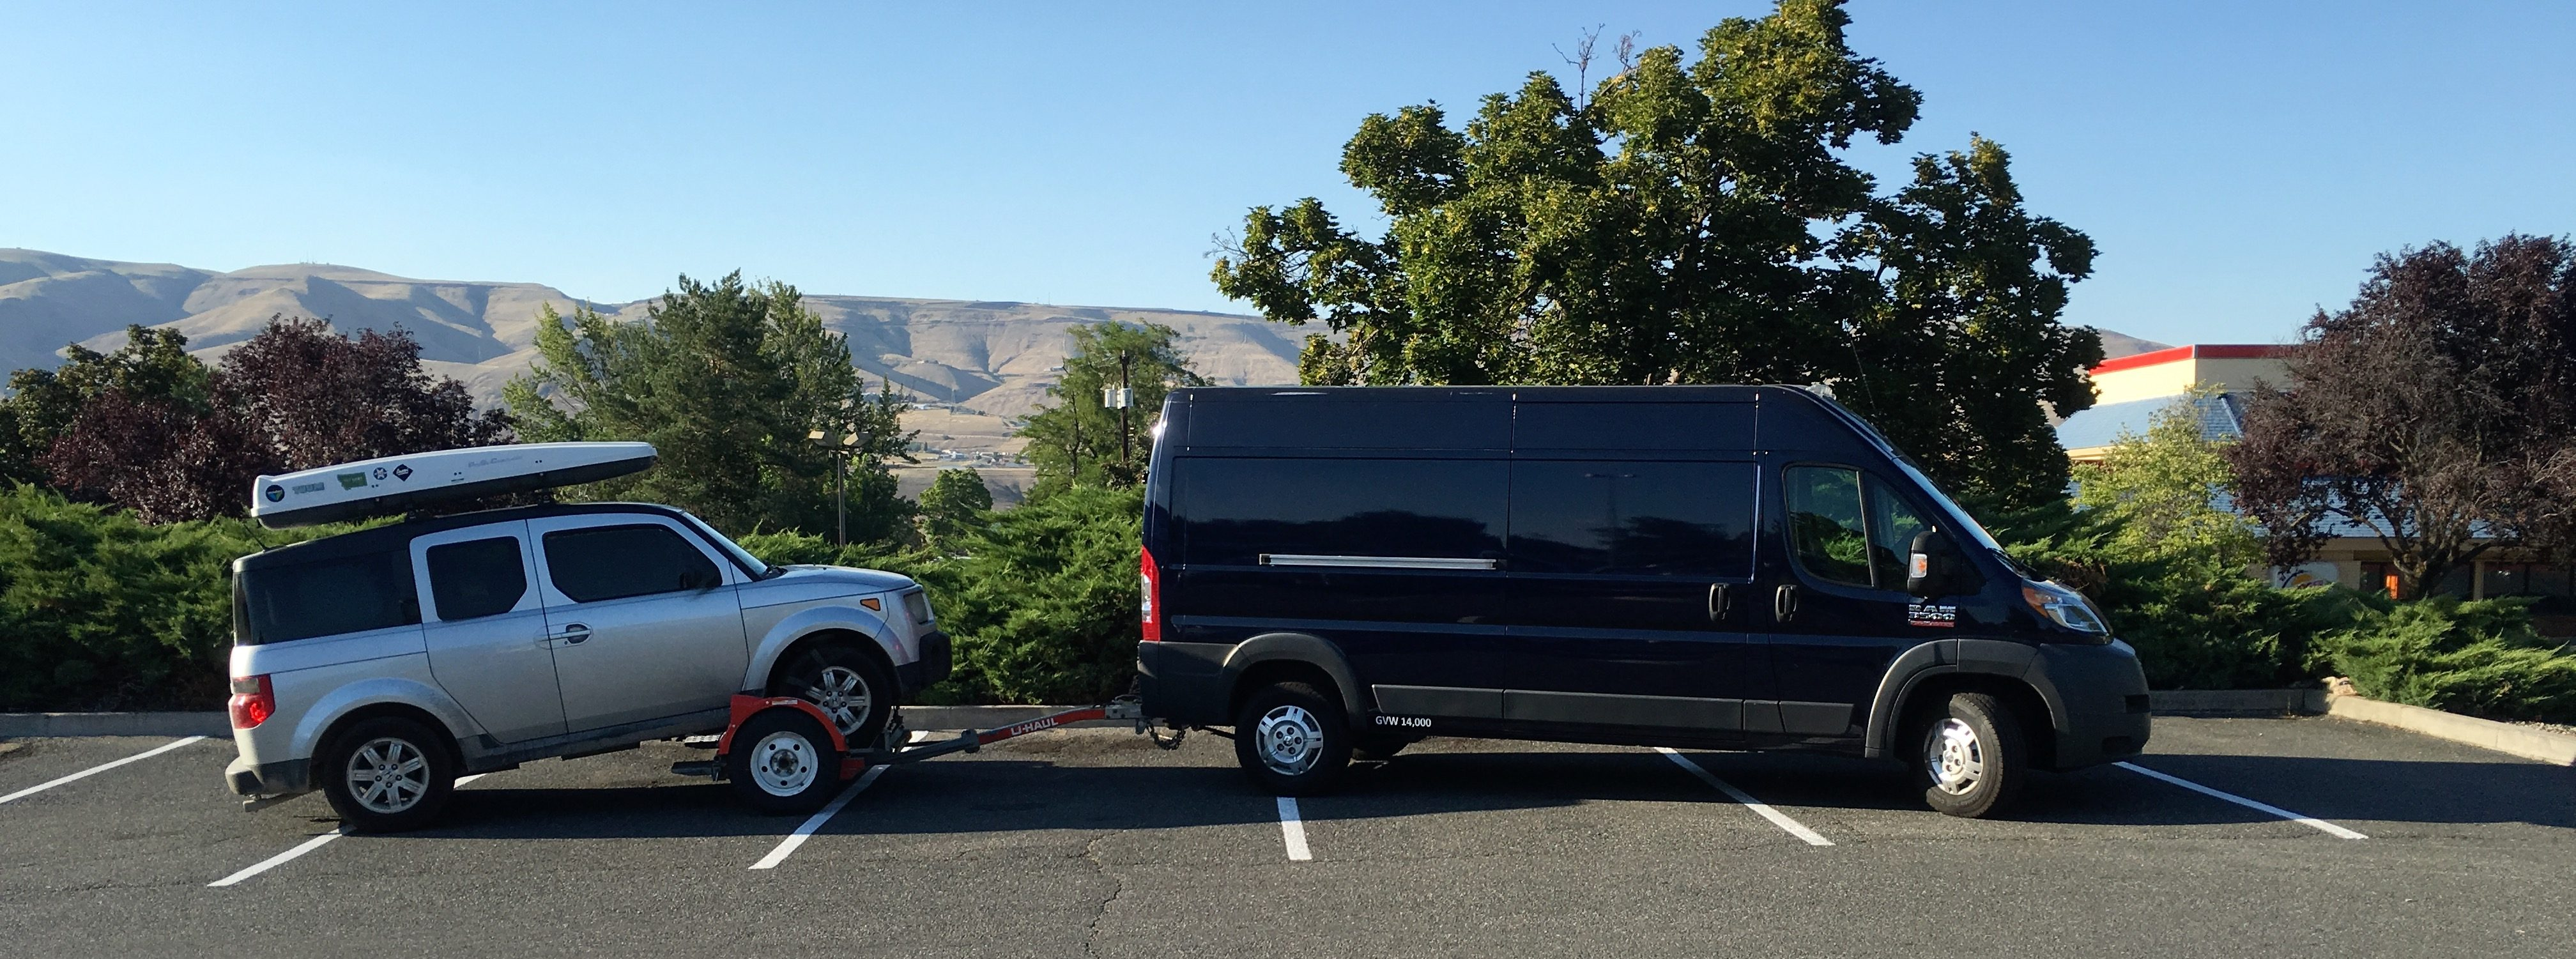 Ram ProMaster Van Purchased